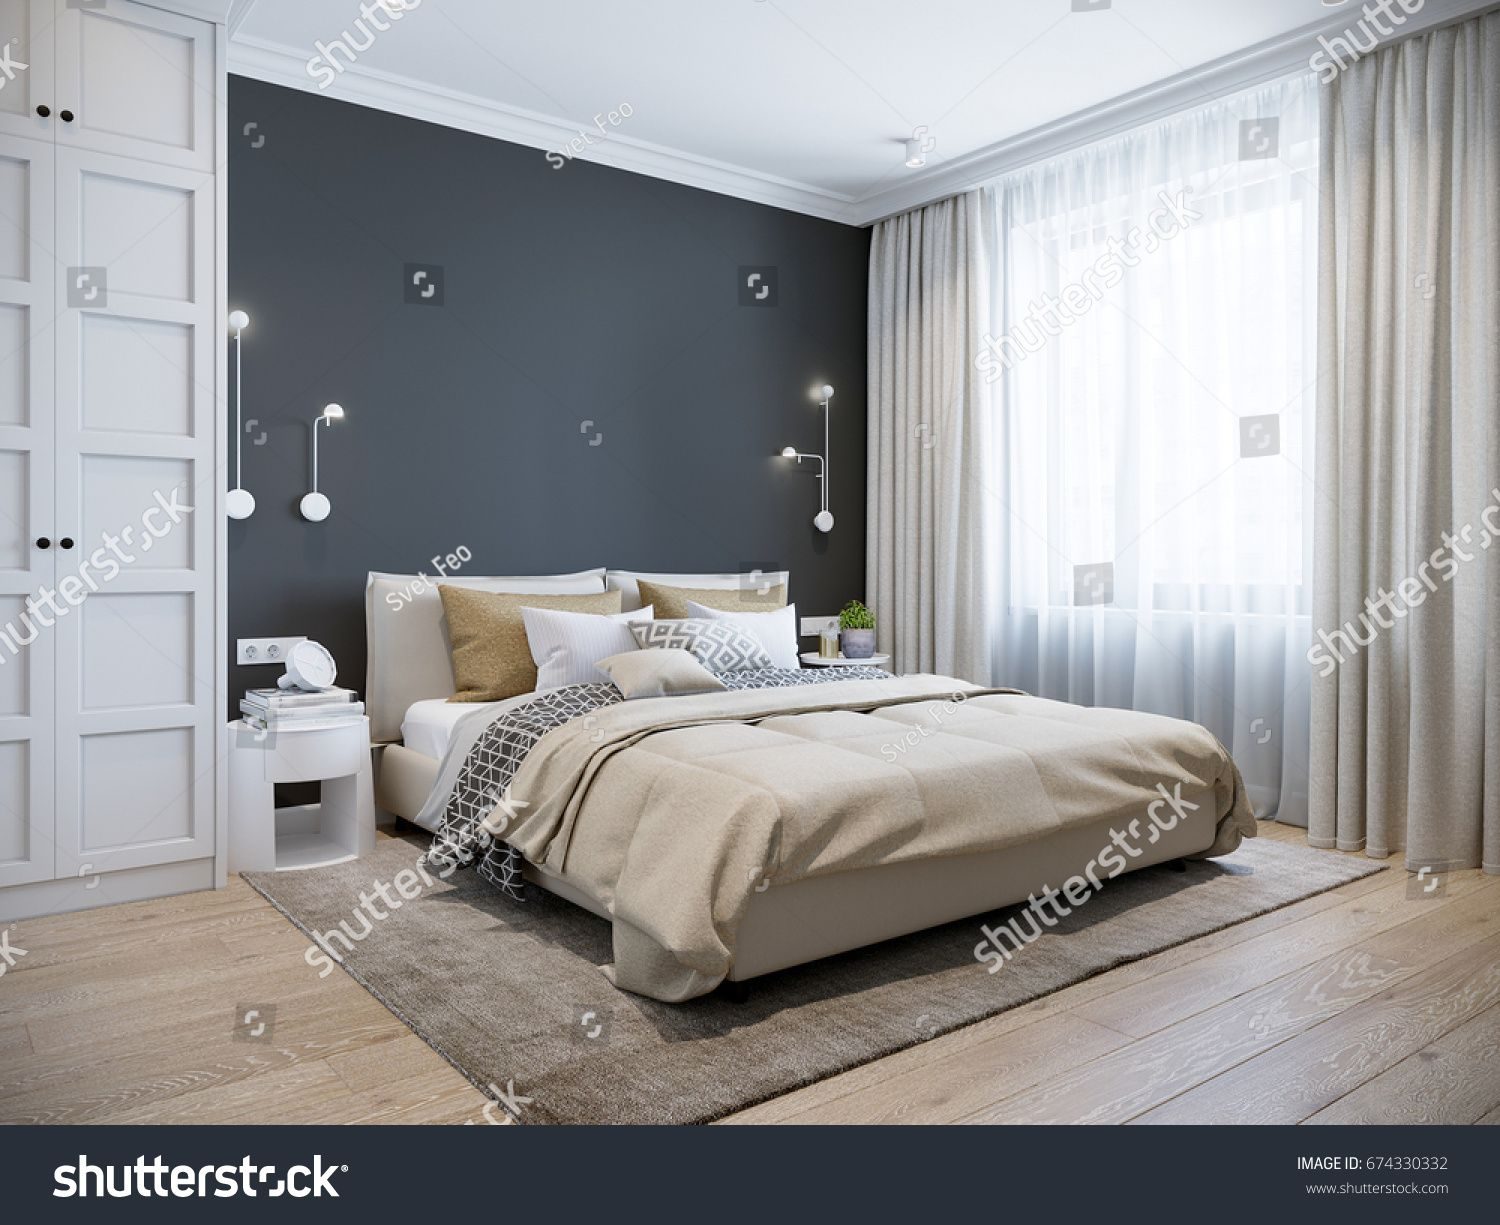 Urban Contemporary Modern Scandinavian Bedroom Interior Design Mock Up Gray And White Wall 3d R Modern Scandinavian Bedroom Bedroom Decor Cozy Bedroom Design